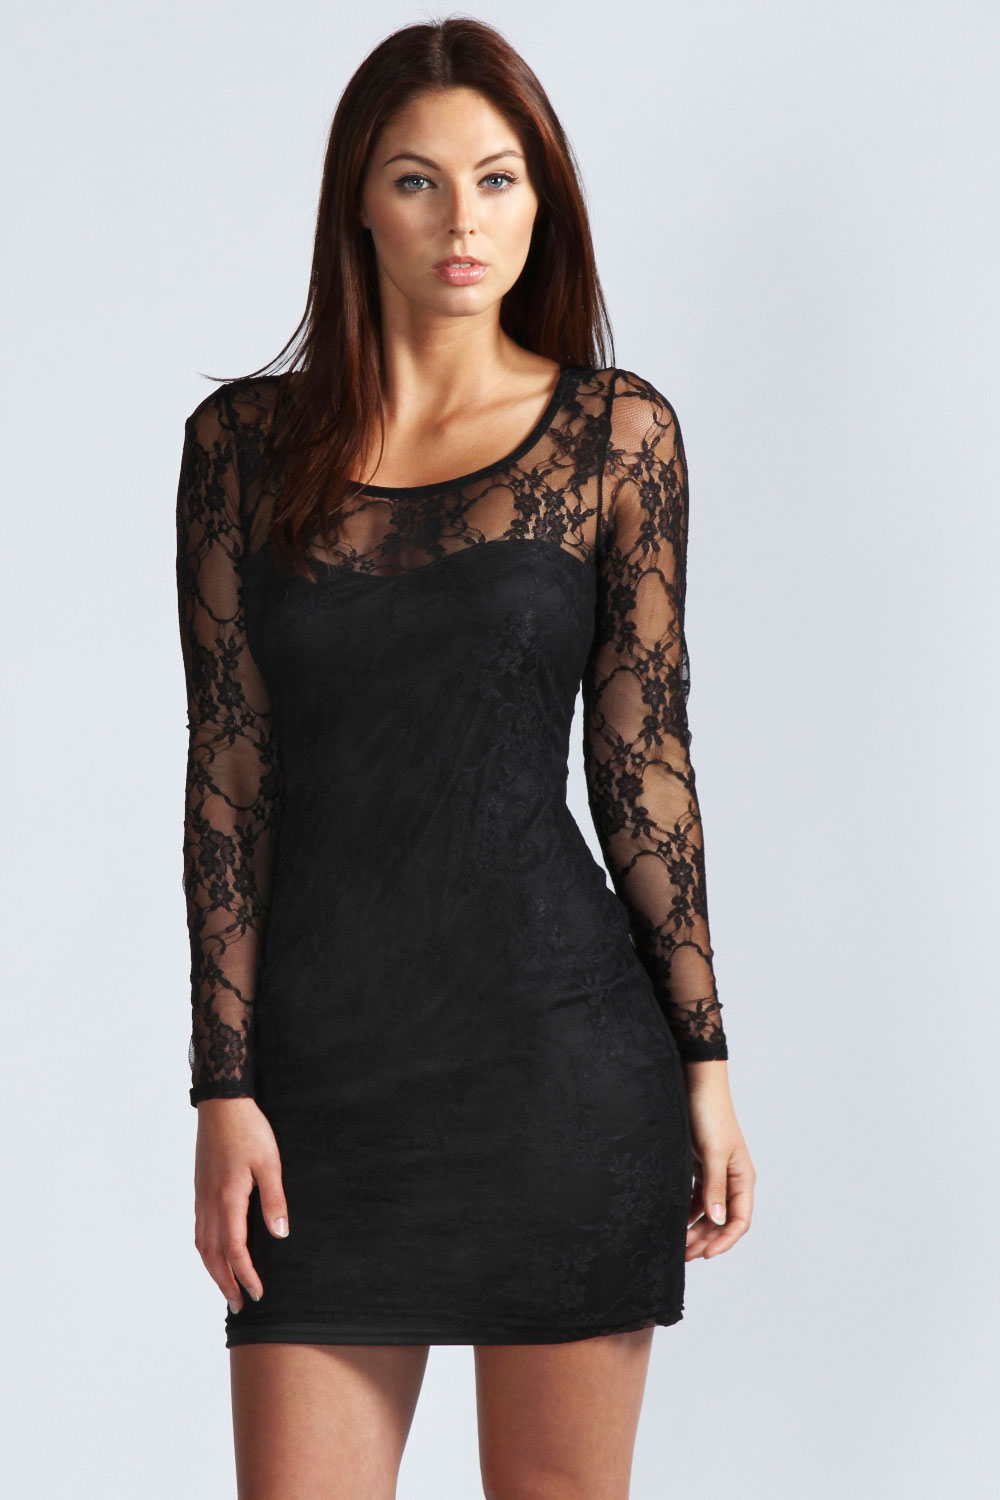 Boohoo Womens Ladies Samantha Long Sleeve Lace Short. Strapless Wedding Dress Too Big. Wedding Dresses Of Princess. Wedding Dresses With Sleeves David's Bridal. Off The Shoulder Sweetheart Wedding Dresses. Tea Length Wedding Dress Lace Back. Winter Wedding Dresses Bridesmaid. Open Back Lace Wedding Dresses For Sale. Long Wedding Dresses That Turn Short